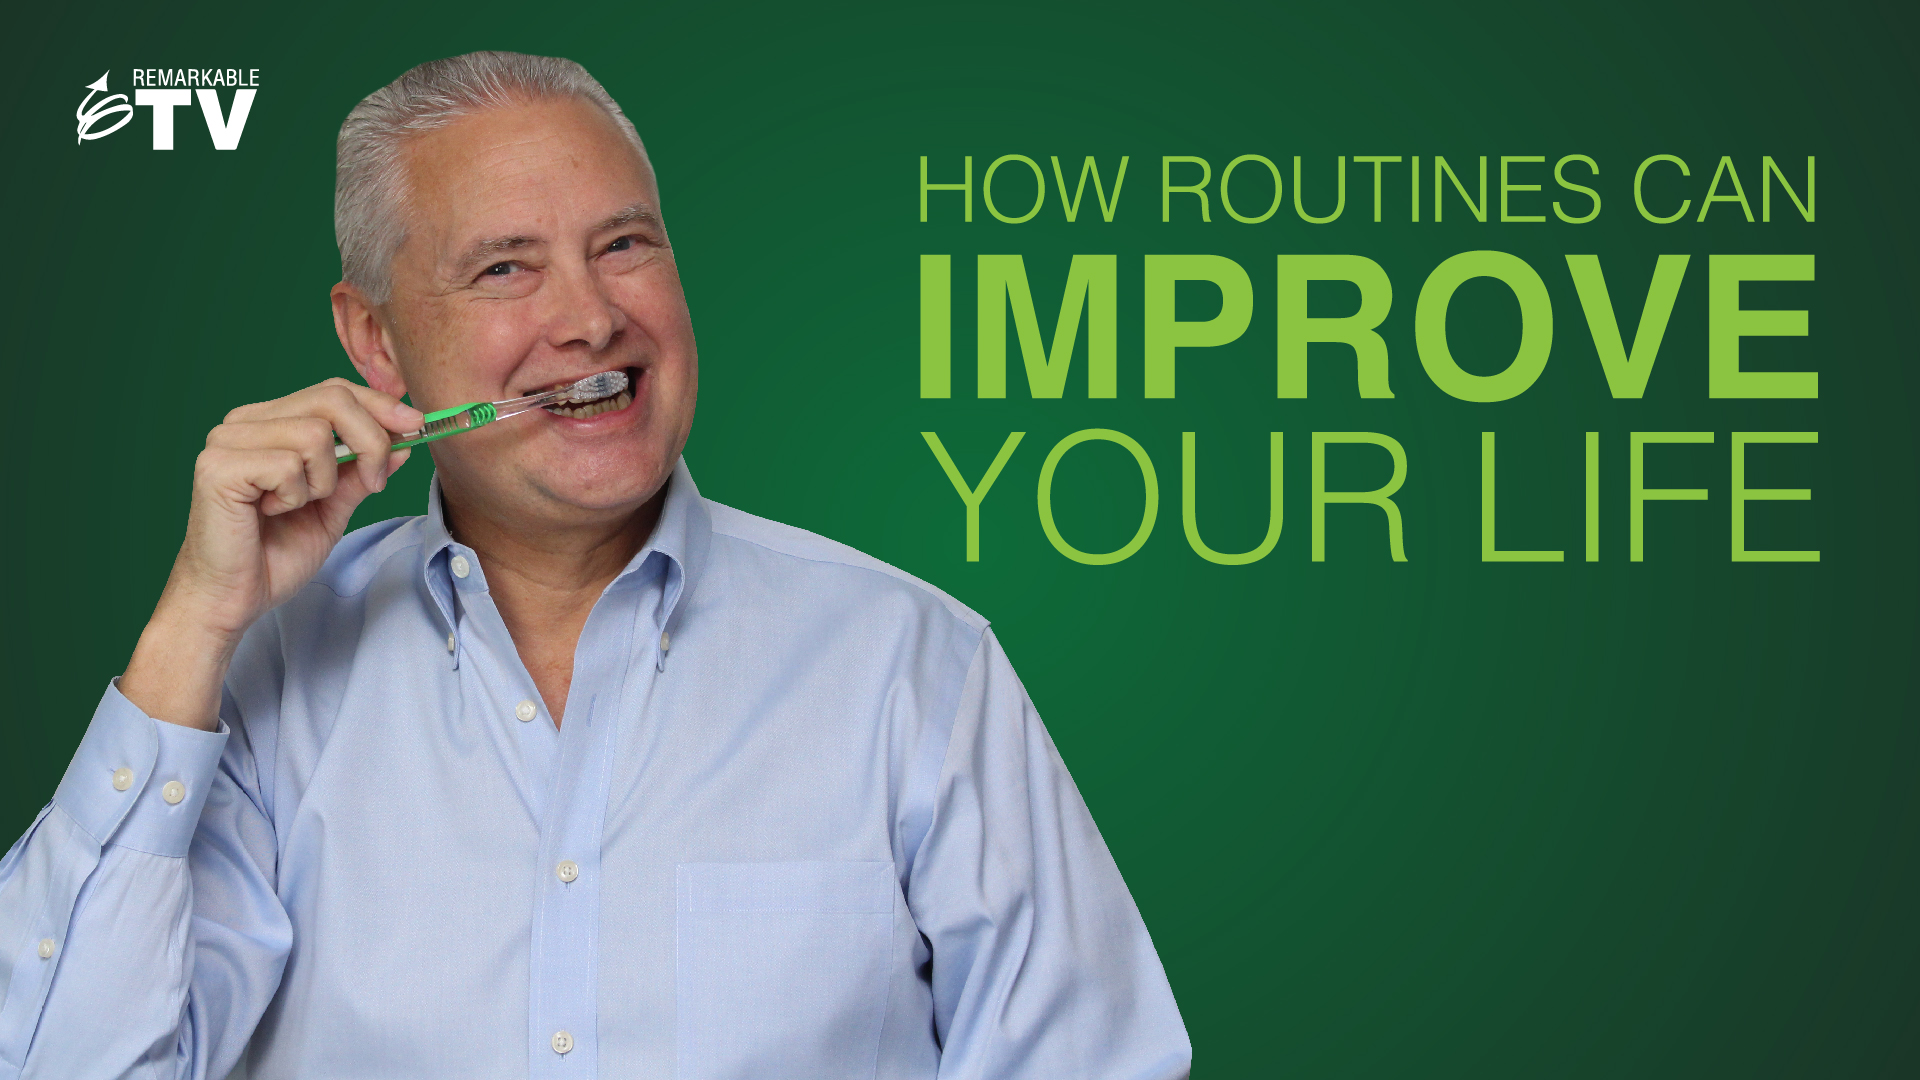 How Routines Can Improve Your Life - Remarkable TV